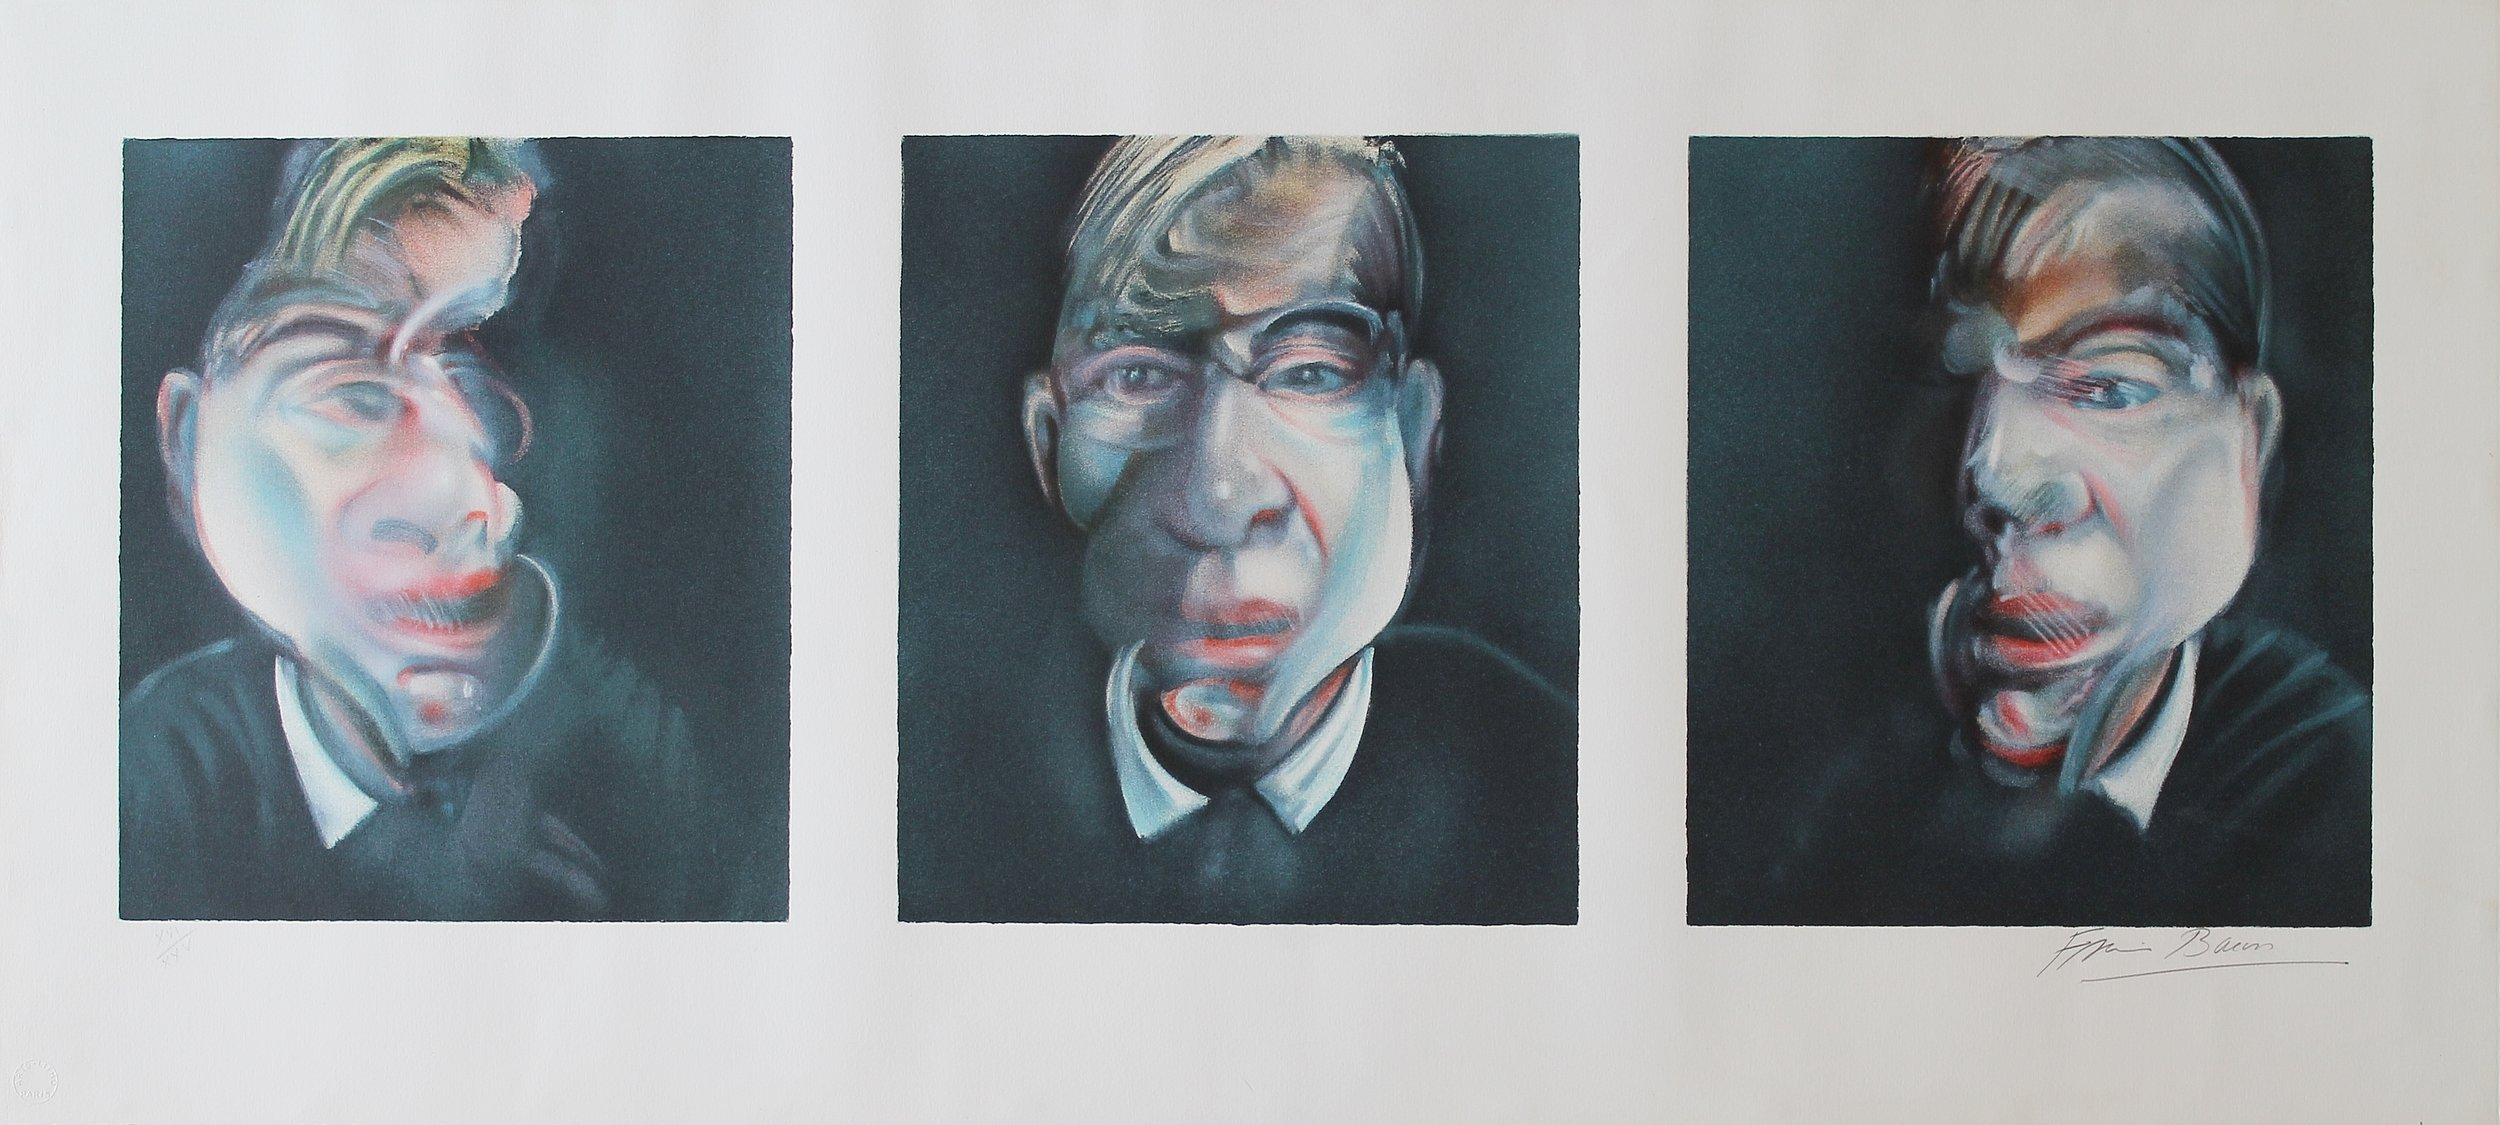 Francis Bacon,  Three Studies for a Self-Portrait, Lithographic Print, 47 x 104 cm, Edition of 150.